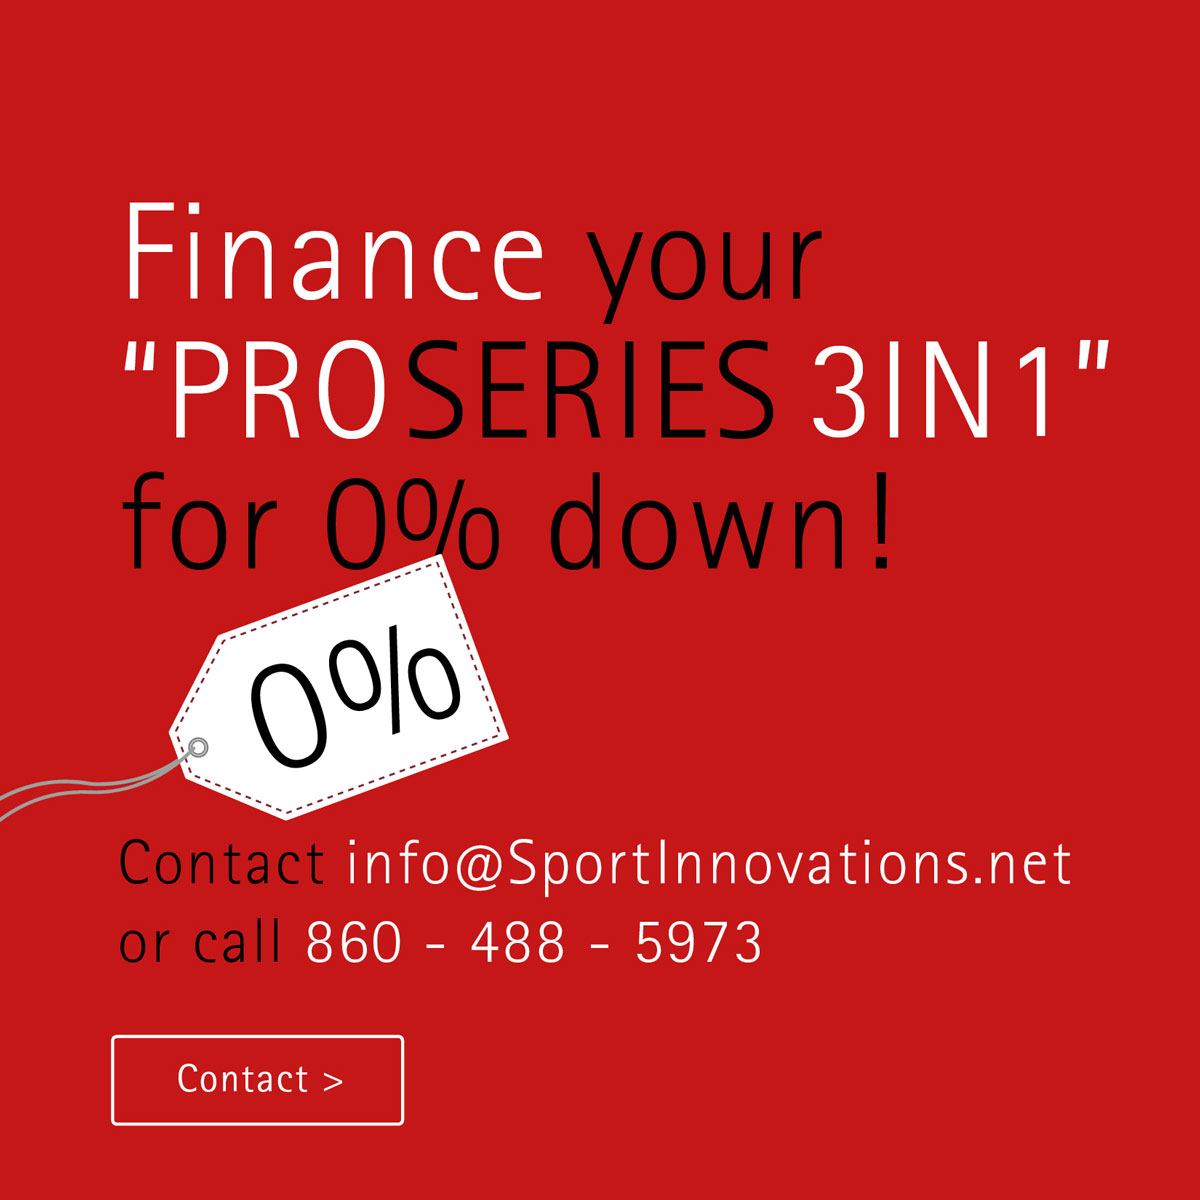 financing-PS3in1-redWeb.jpg